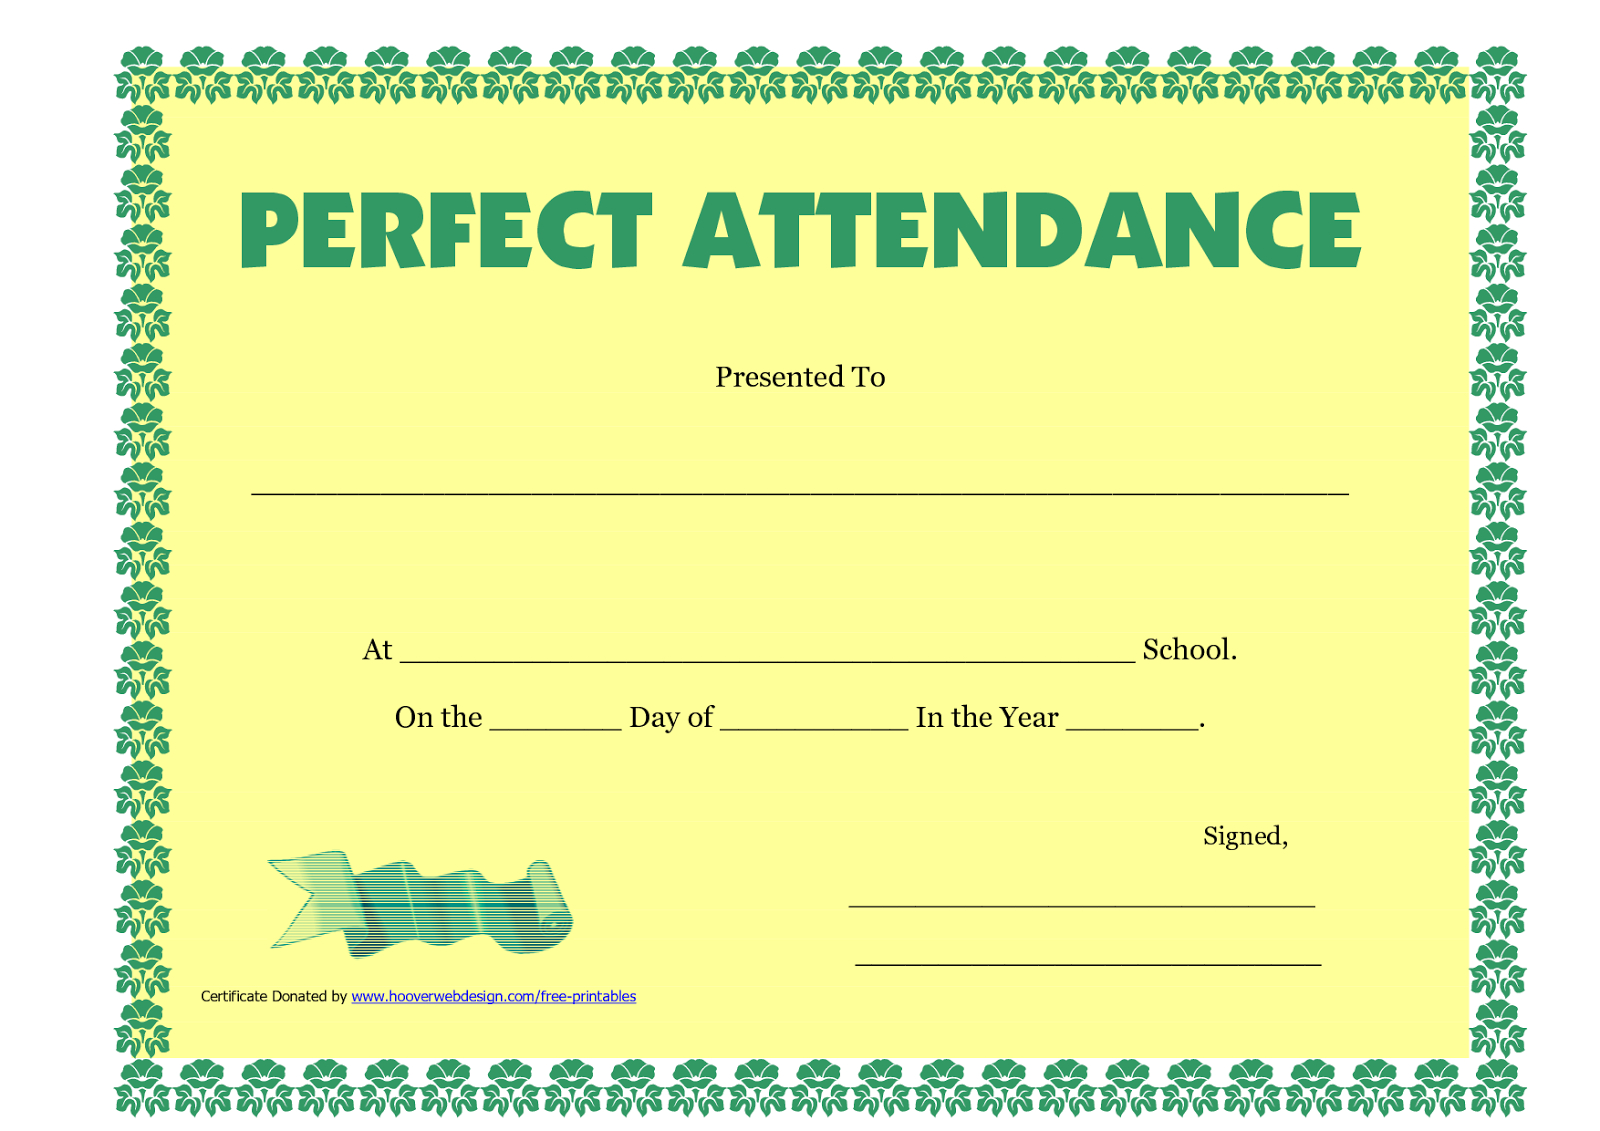 Perfect Attendance Certificate Printable  Free Download  Dtemplates Throughout Perfect Attendance Certificate Free Template